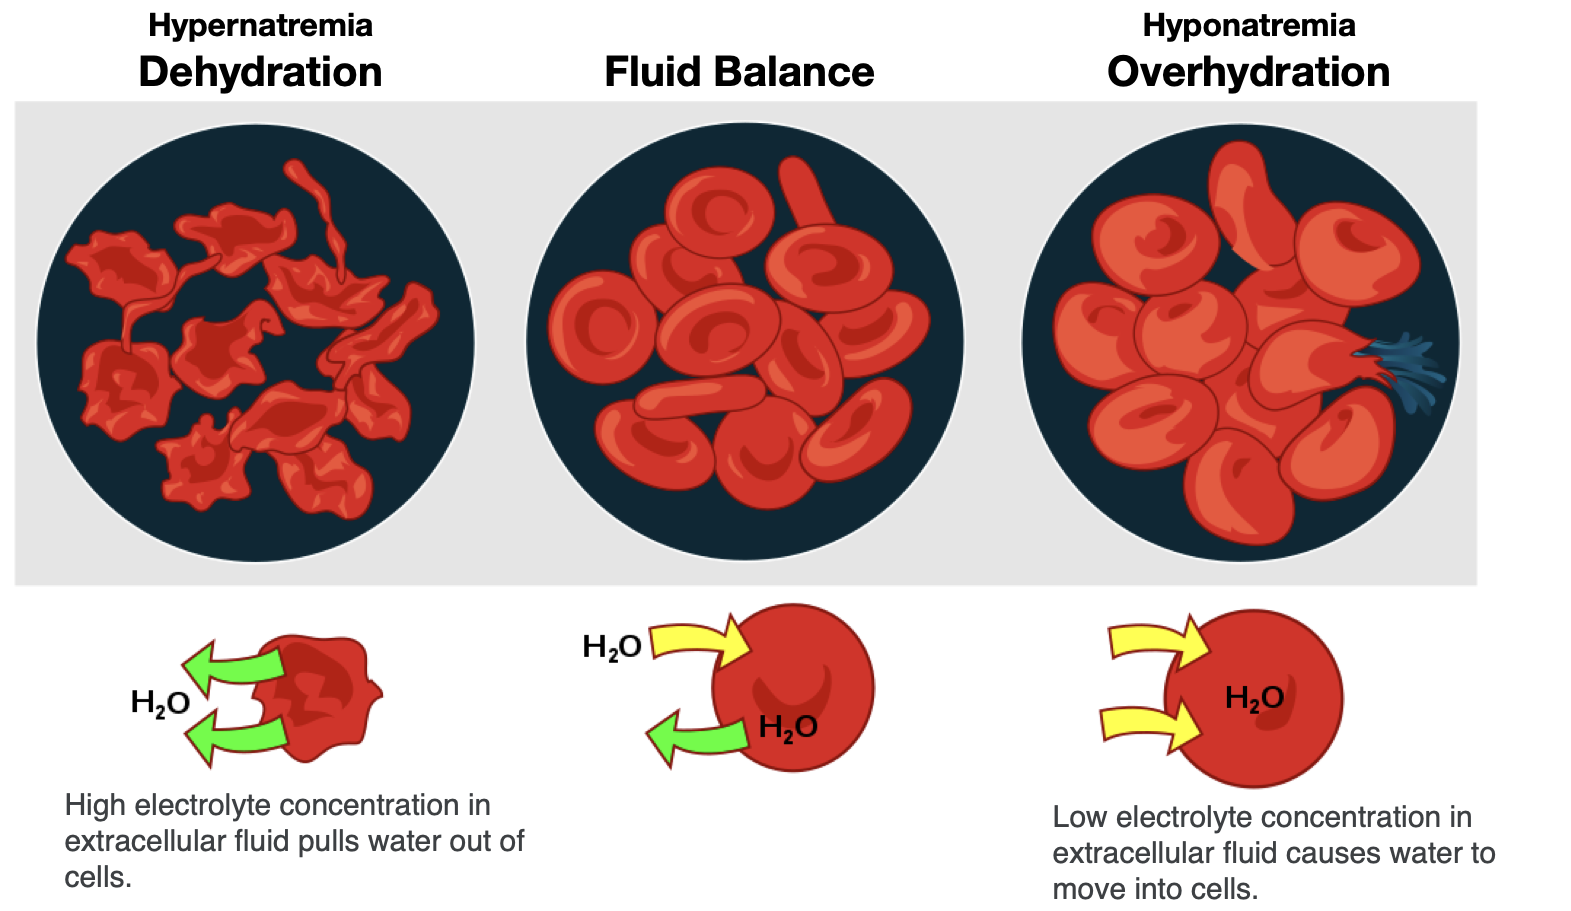 Three different hydration states are shown with the cell. With dehydration, the concentration of electrolytes becomes greater outside of cells, leading to water leaving cells and making them shrink. In fluid balance, electrolyte concentrations are equal inside and outside the cells, so water is in balance, too. During overhydration, electrolyte concentrations are low outside the cell relative to inside the cell (like in the situation of hyponatremia), so water moves into the cells, making them swell.